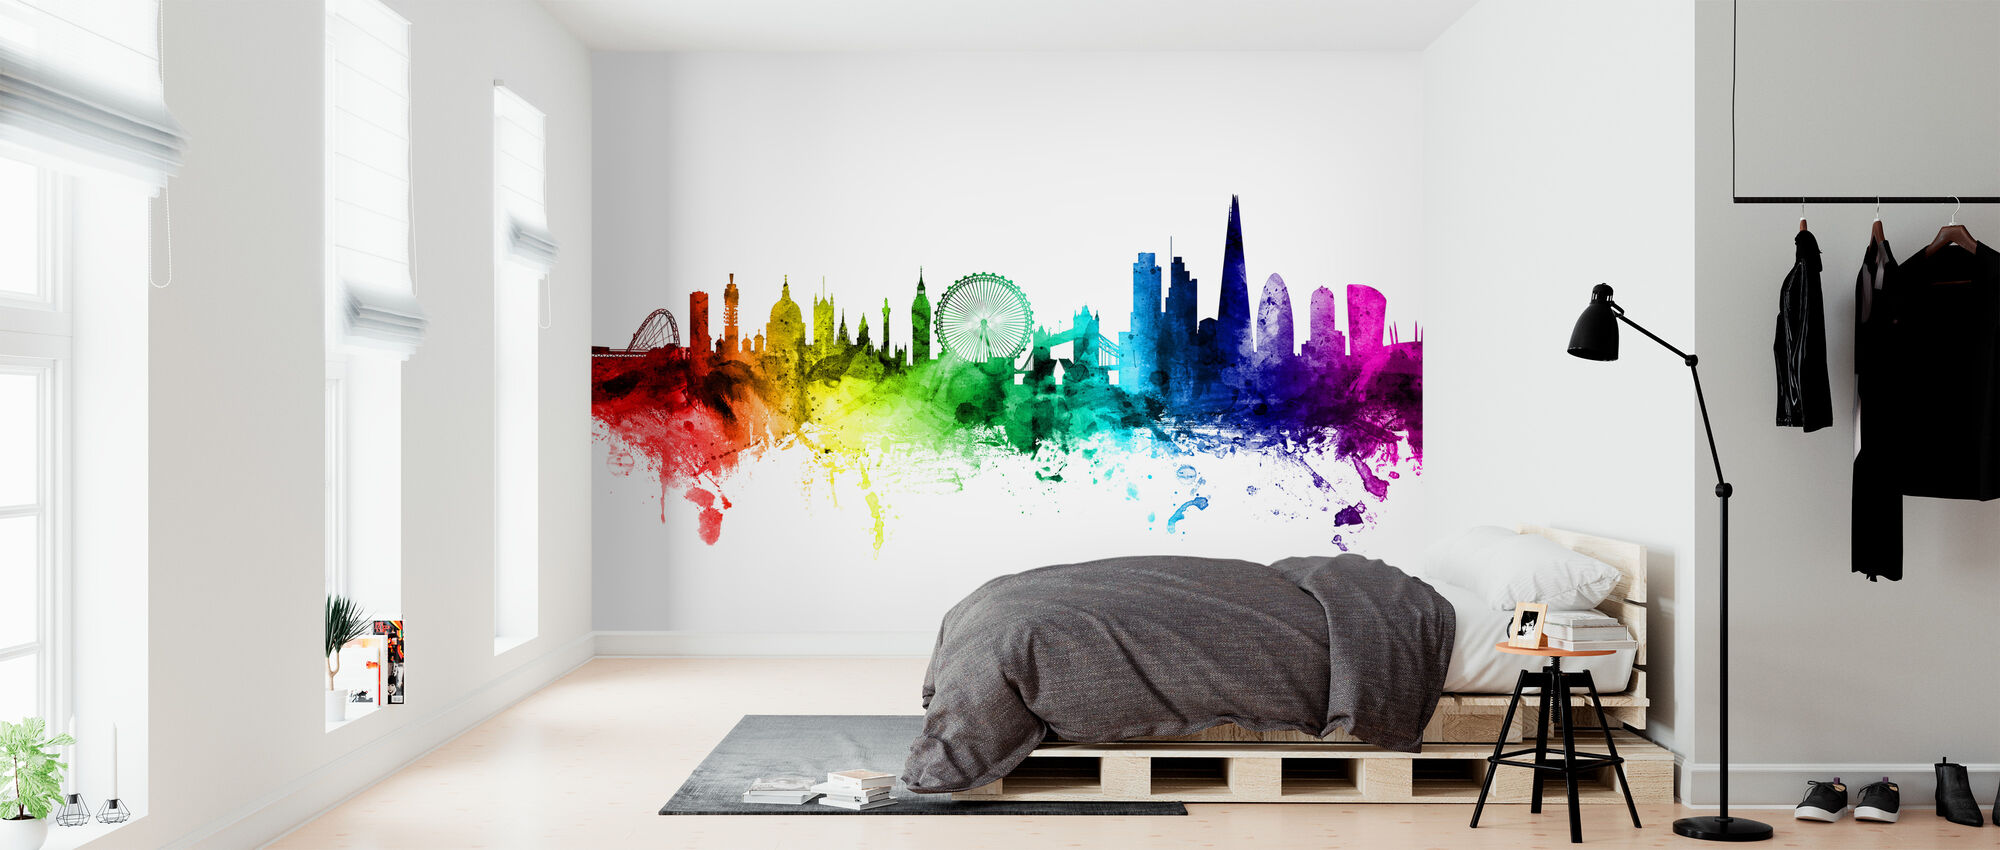 London Skyline Rainbow - Behang - Slaapkamer